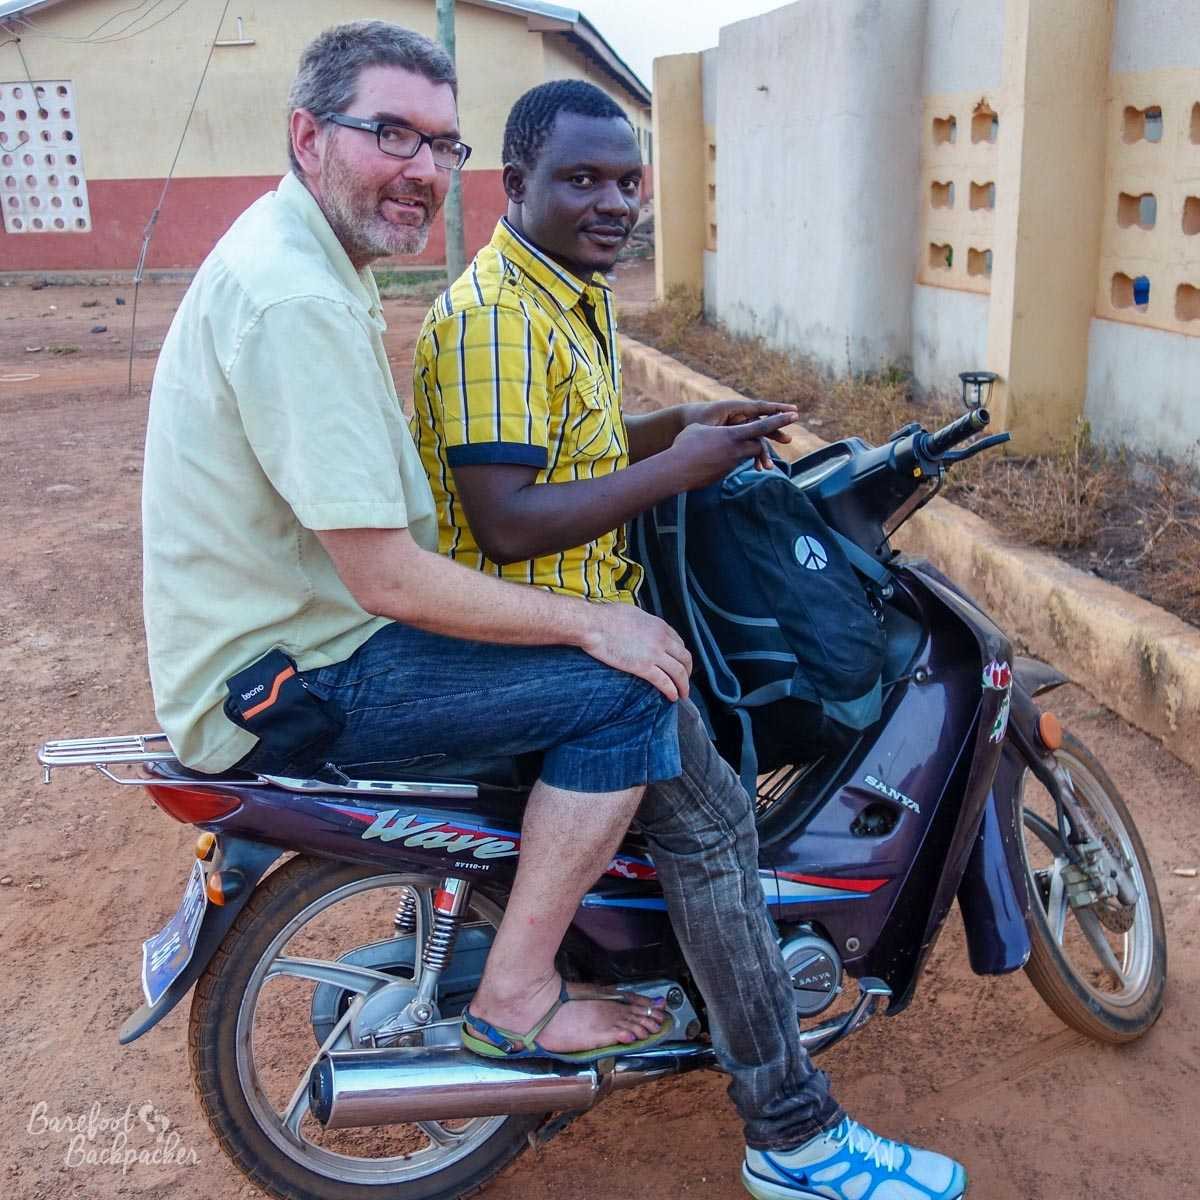 The moto-driver in Tamale, Ghana, together with the Barefoot Backpacker. Who is not barefoot at this point.